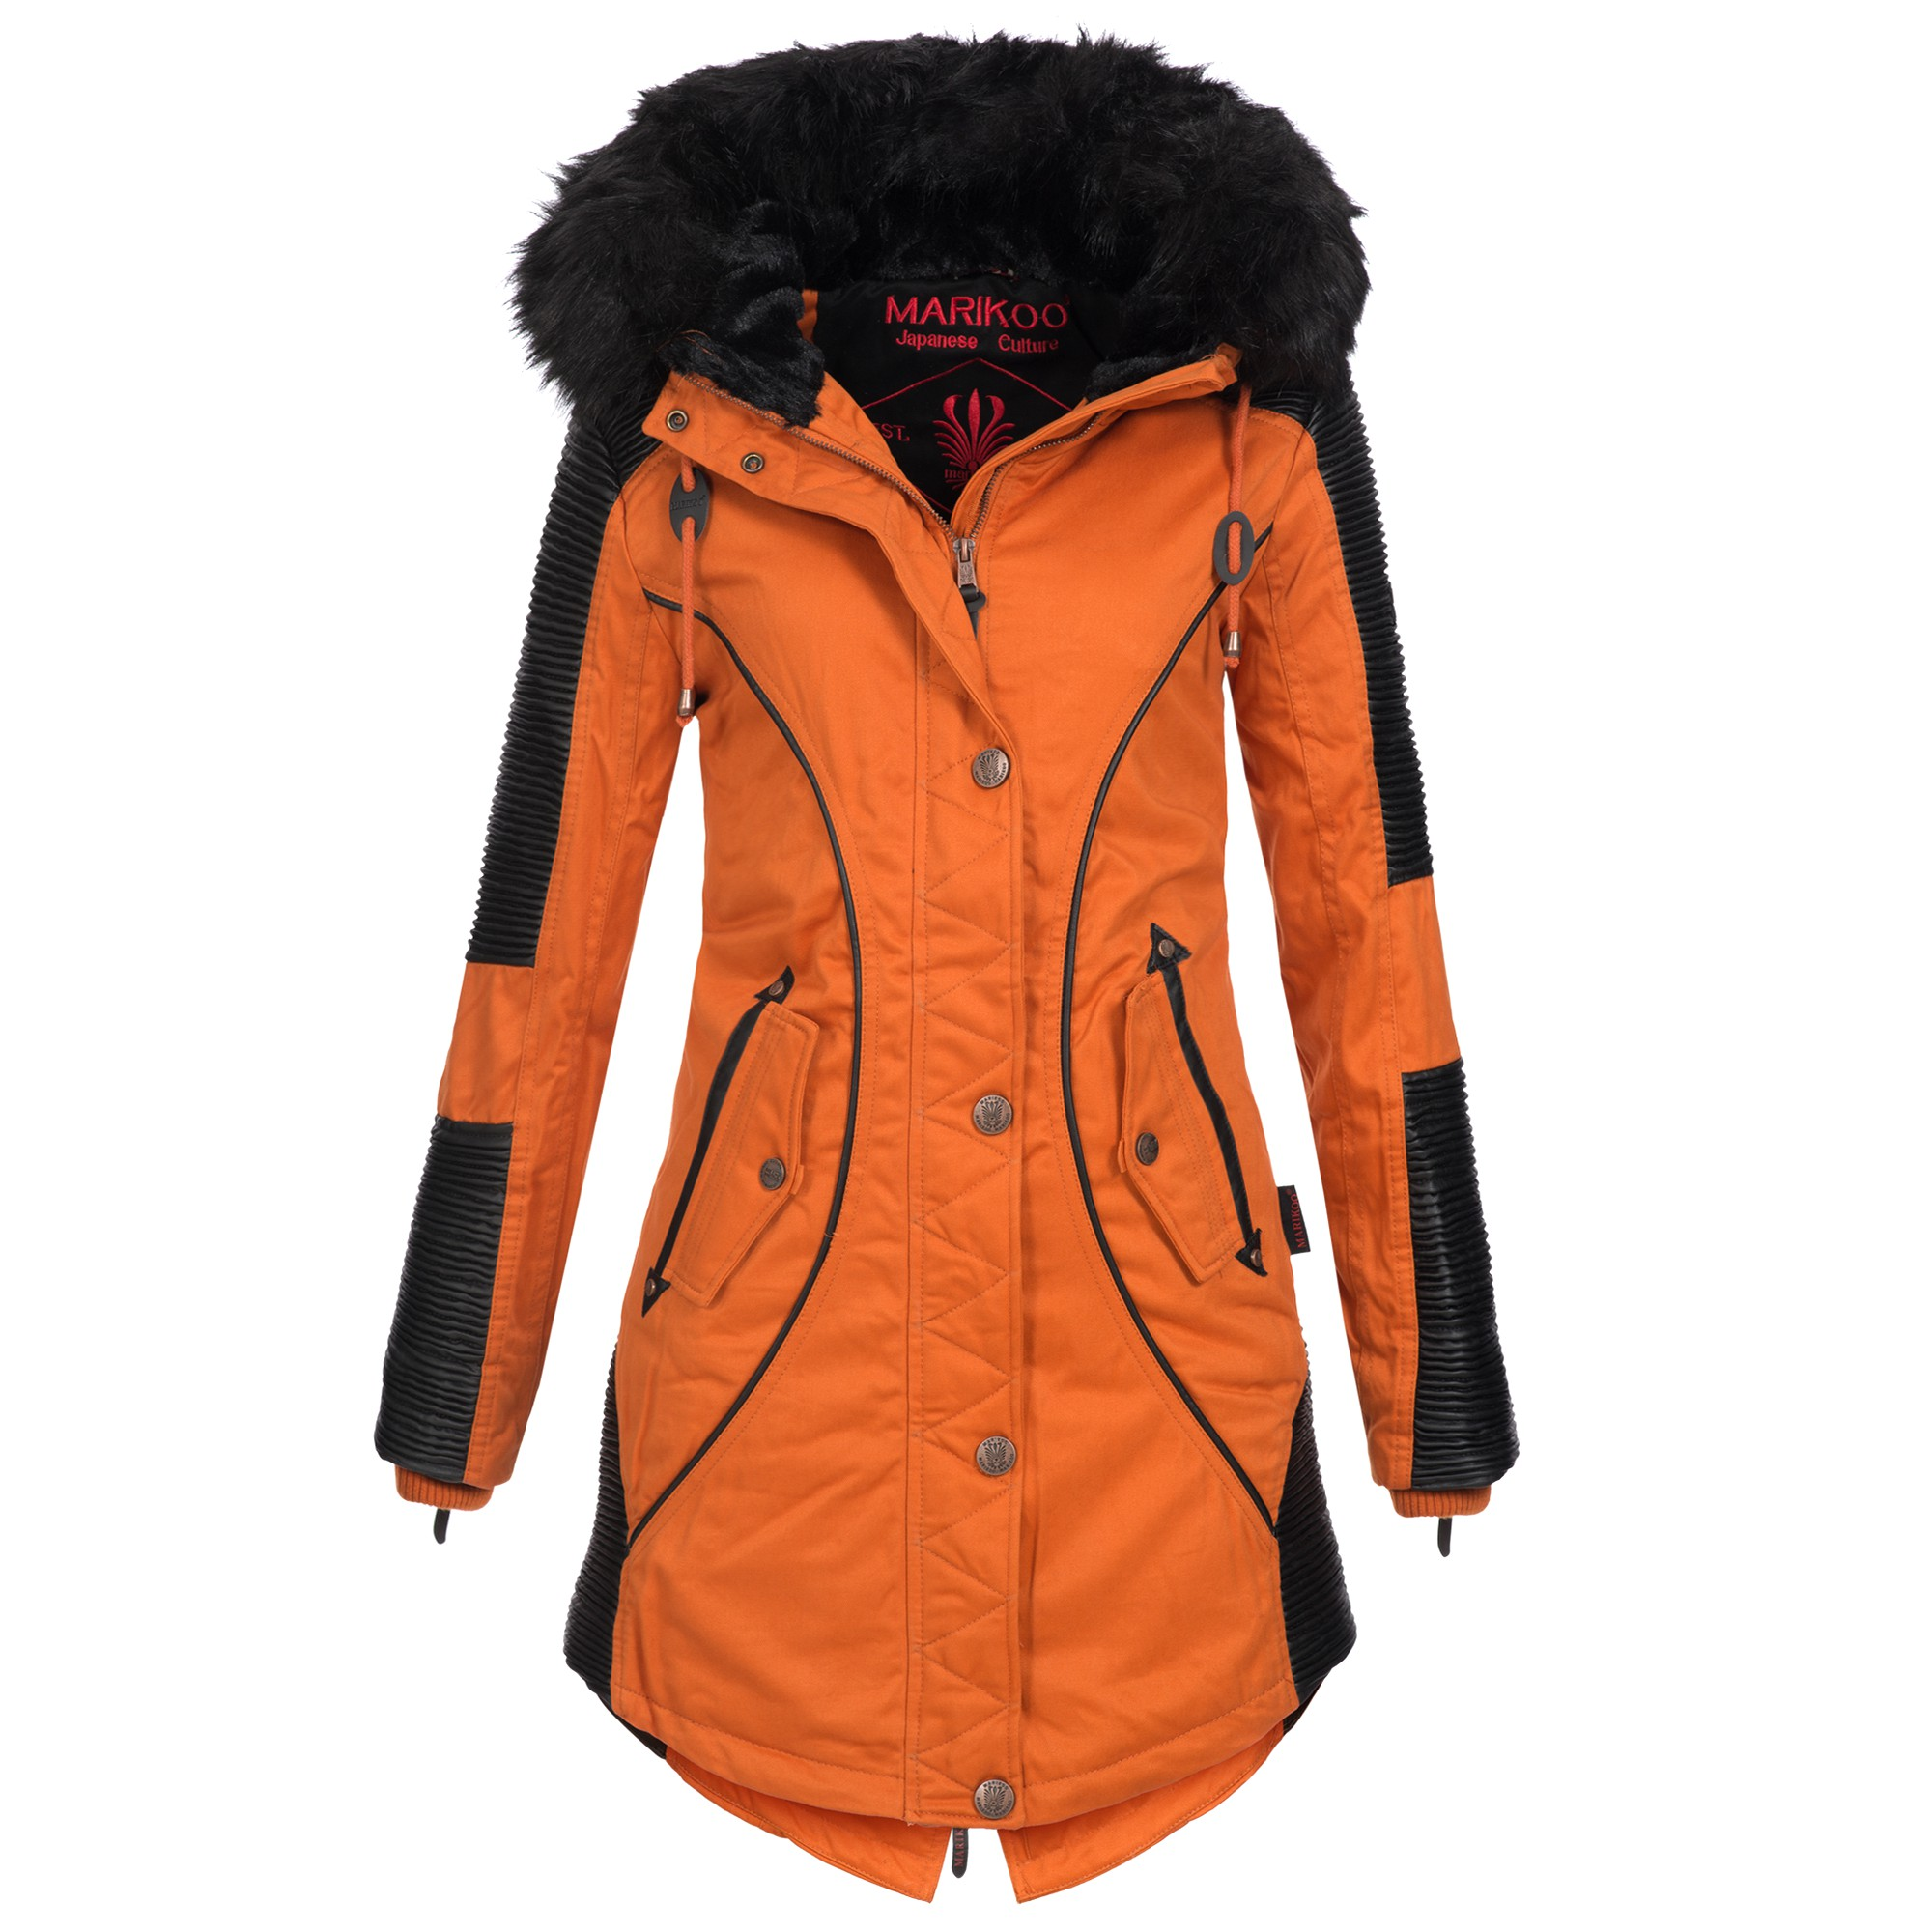 Marikoo Damen Winter Jacke Mantel Winterjacke warm gefüttert